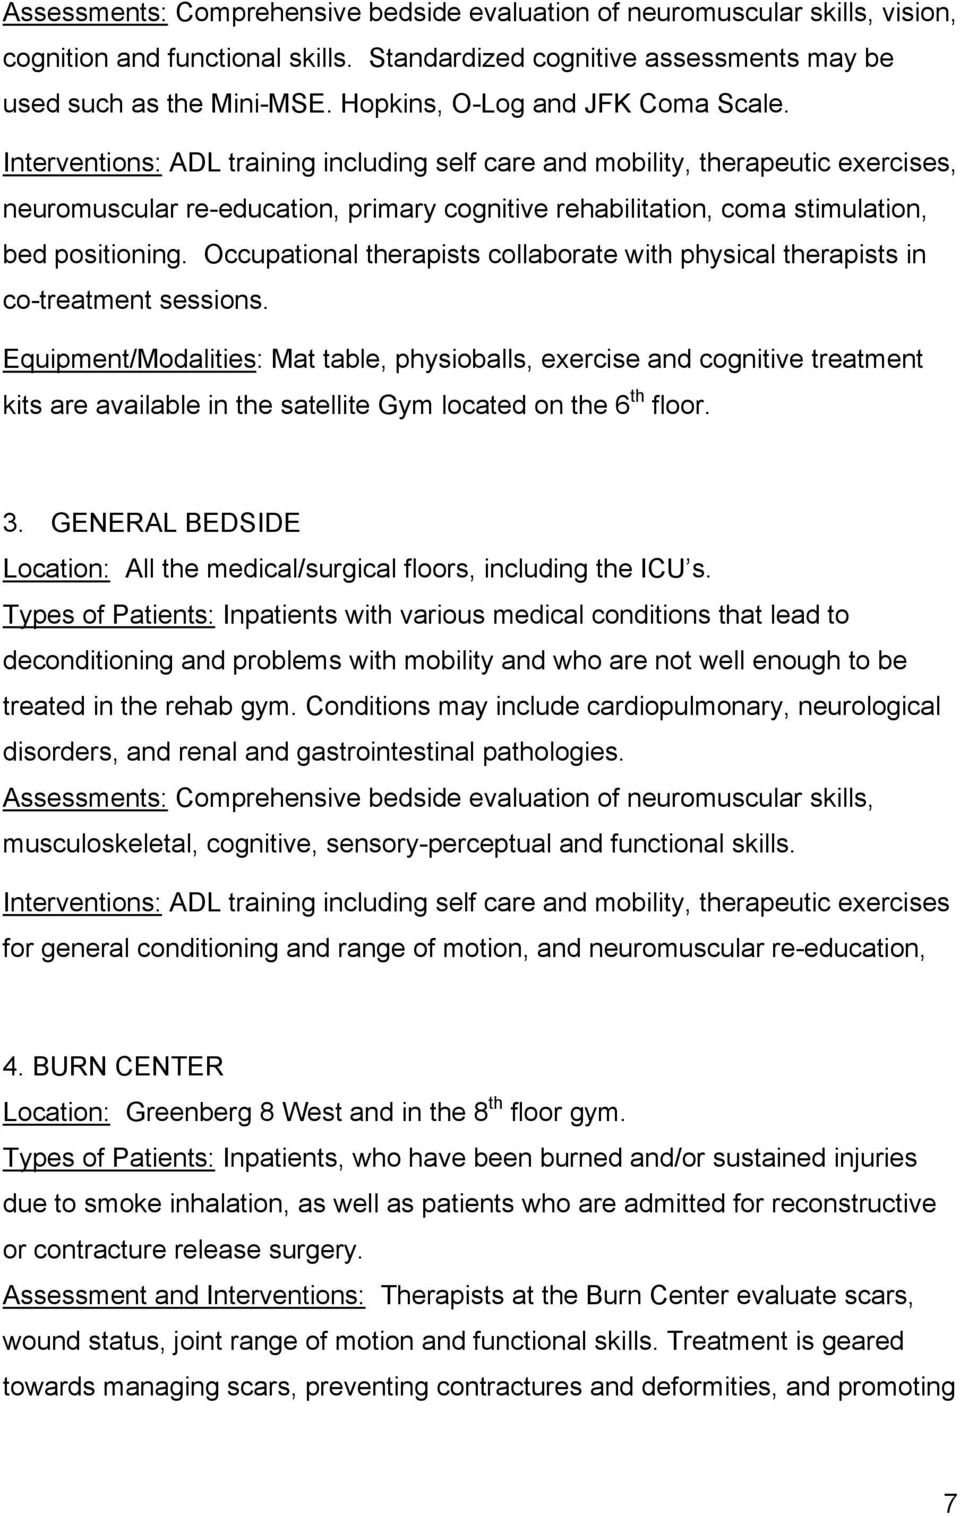 Interventions: ADL training including self care and mobility, therapeutic exercises, neuromuscular re-education, primary cognitive rehabilitation, coma stimulation, bed positioning.